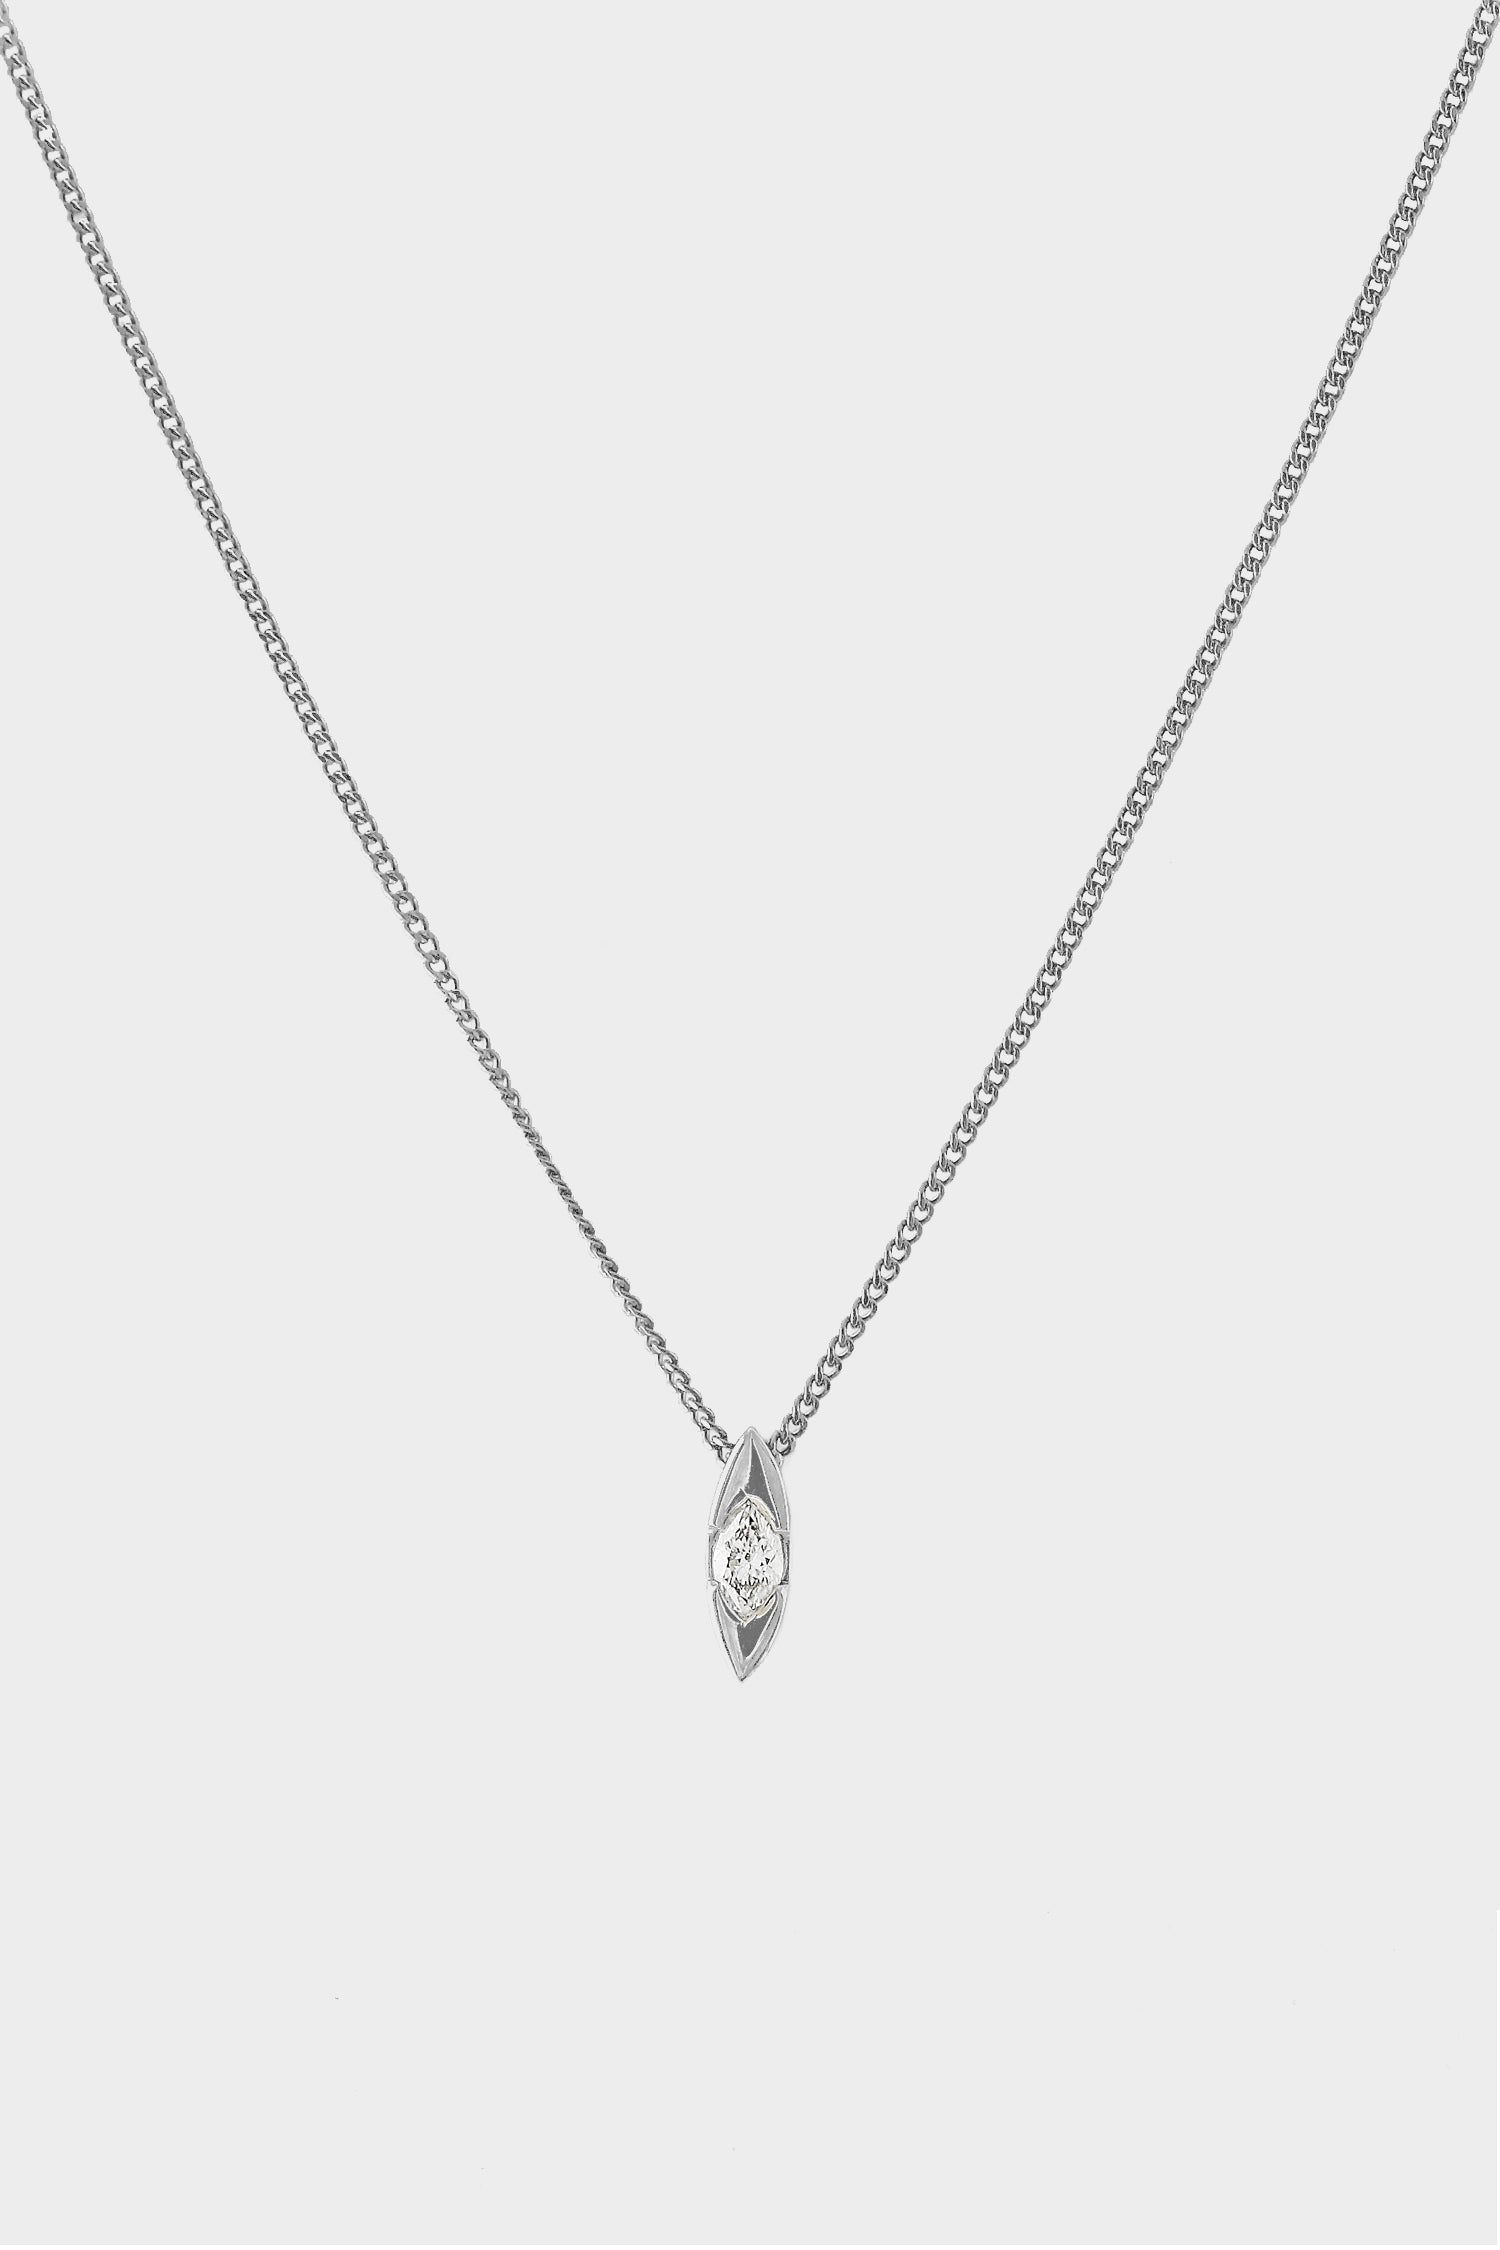 marquise yg necklace in white nl gifts yellow anniversary pendant jewelry with diamond gold